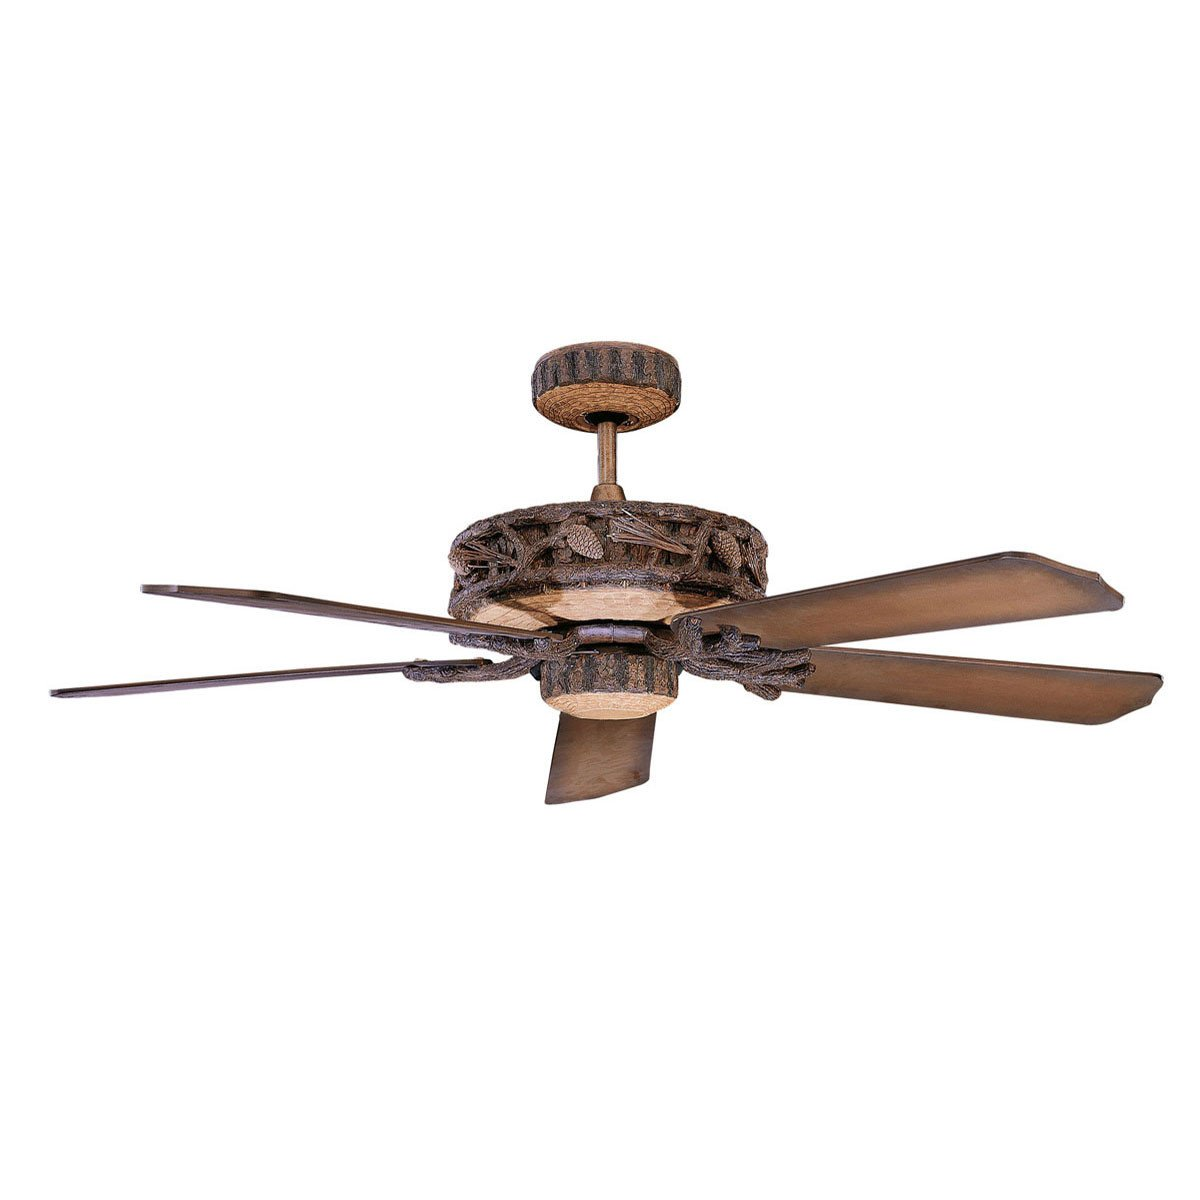 "Concord Fans 52"" Ponderosa Wet Location Old World Leather Outdoor Ceiling Fan"